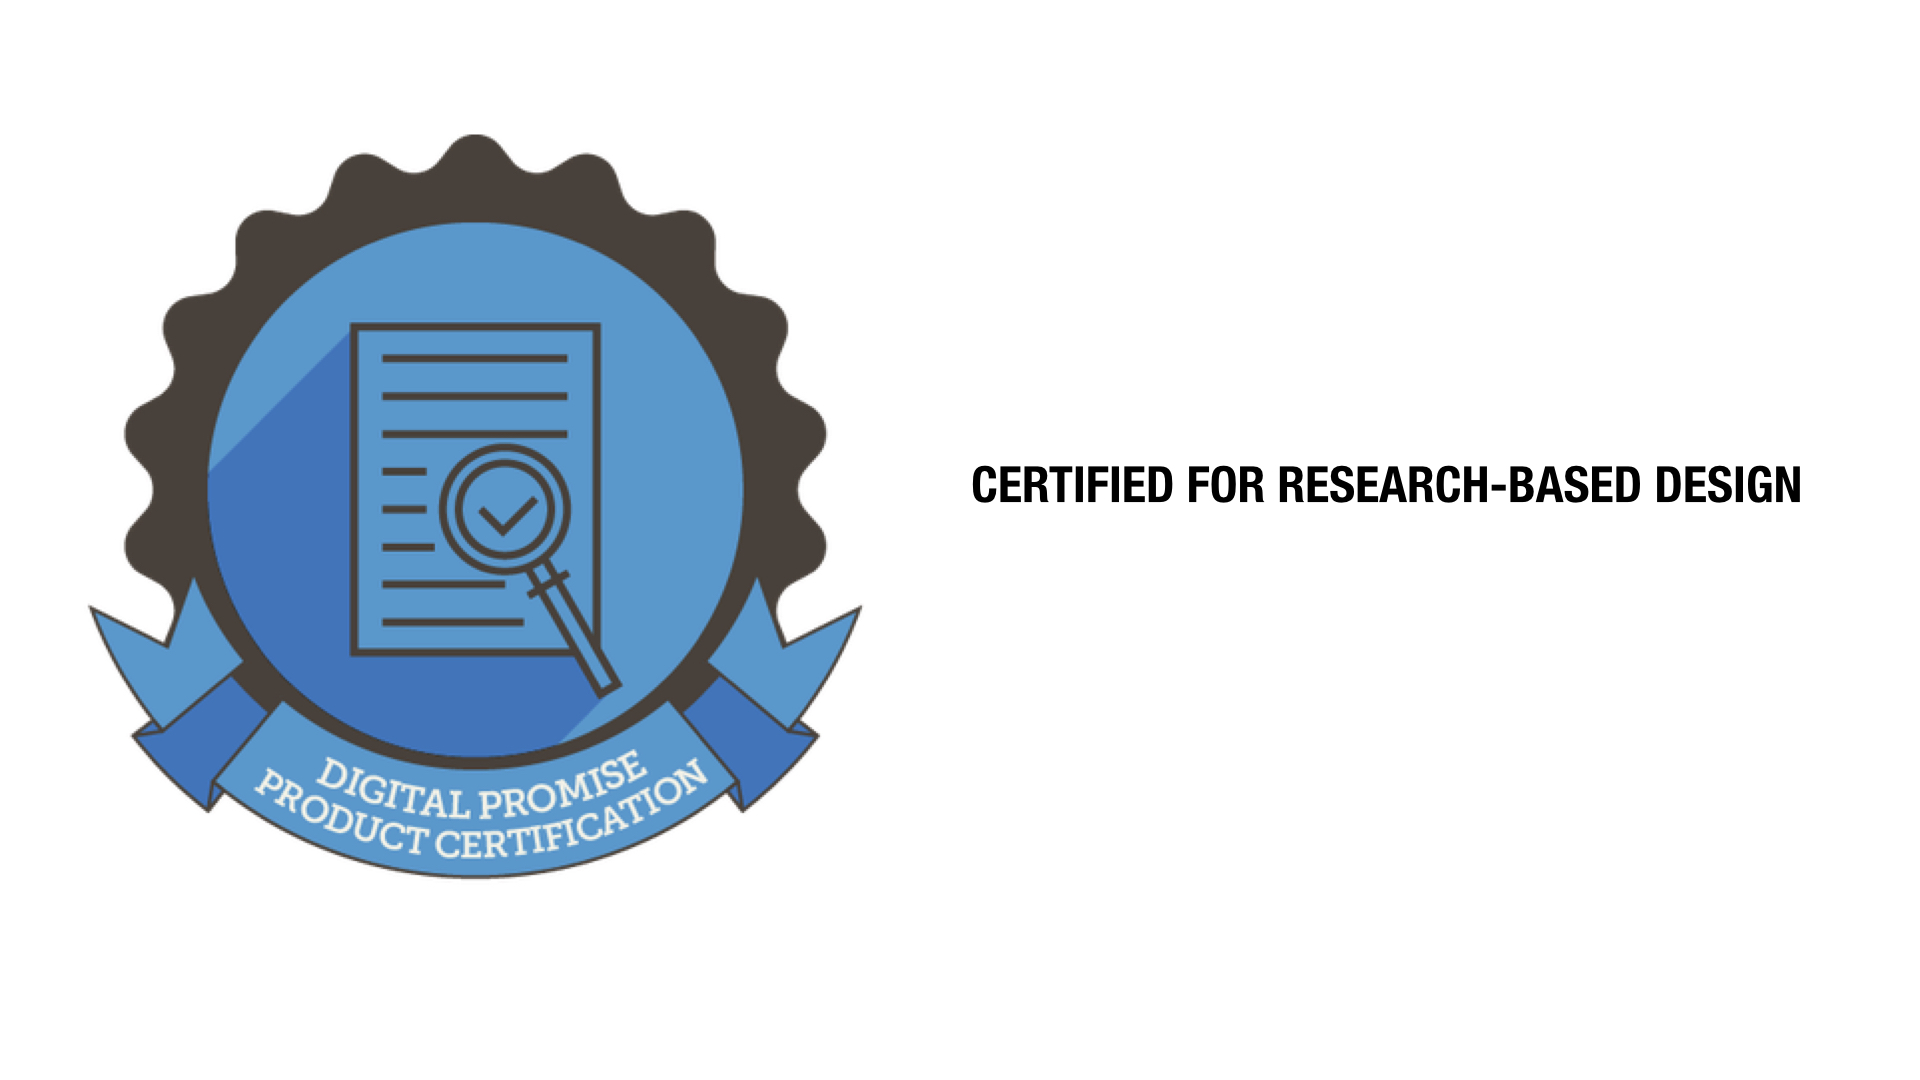 Digital Promise Certified for Researc-based Design